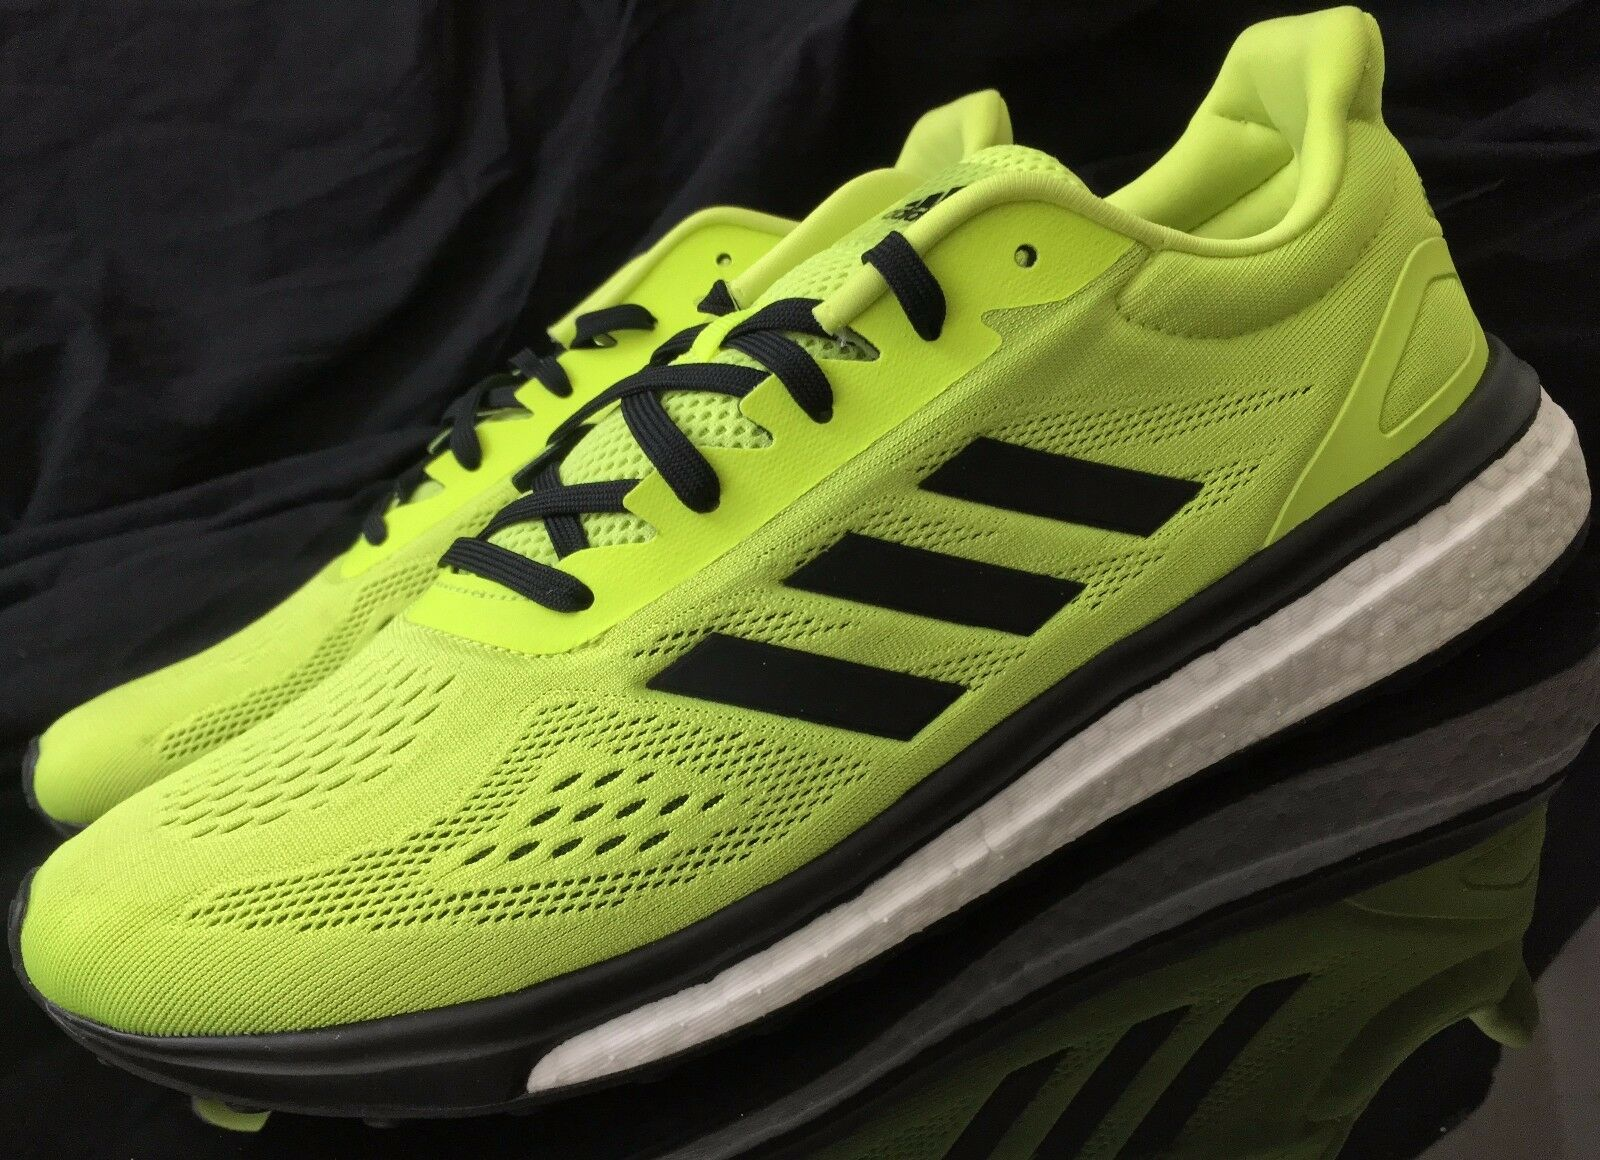 NEW ADIDAS RUNNING SHOES BOOST AUTHENTIC - BB2962 - Men's Size 10.5, 11